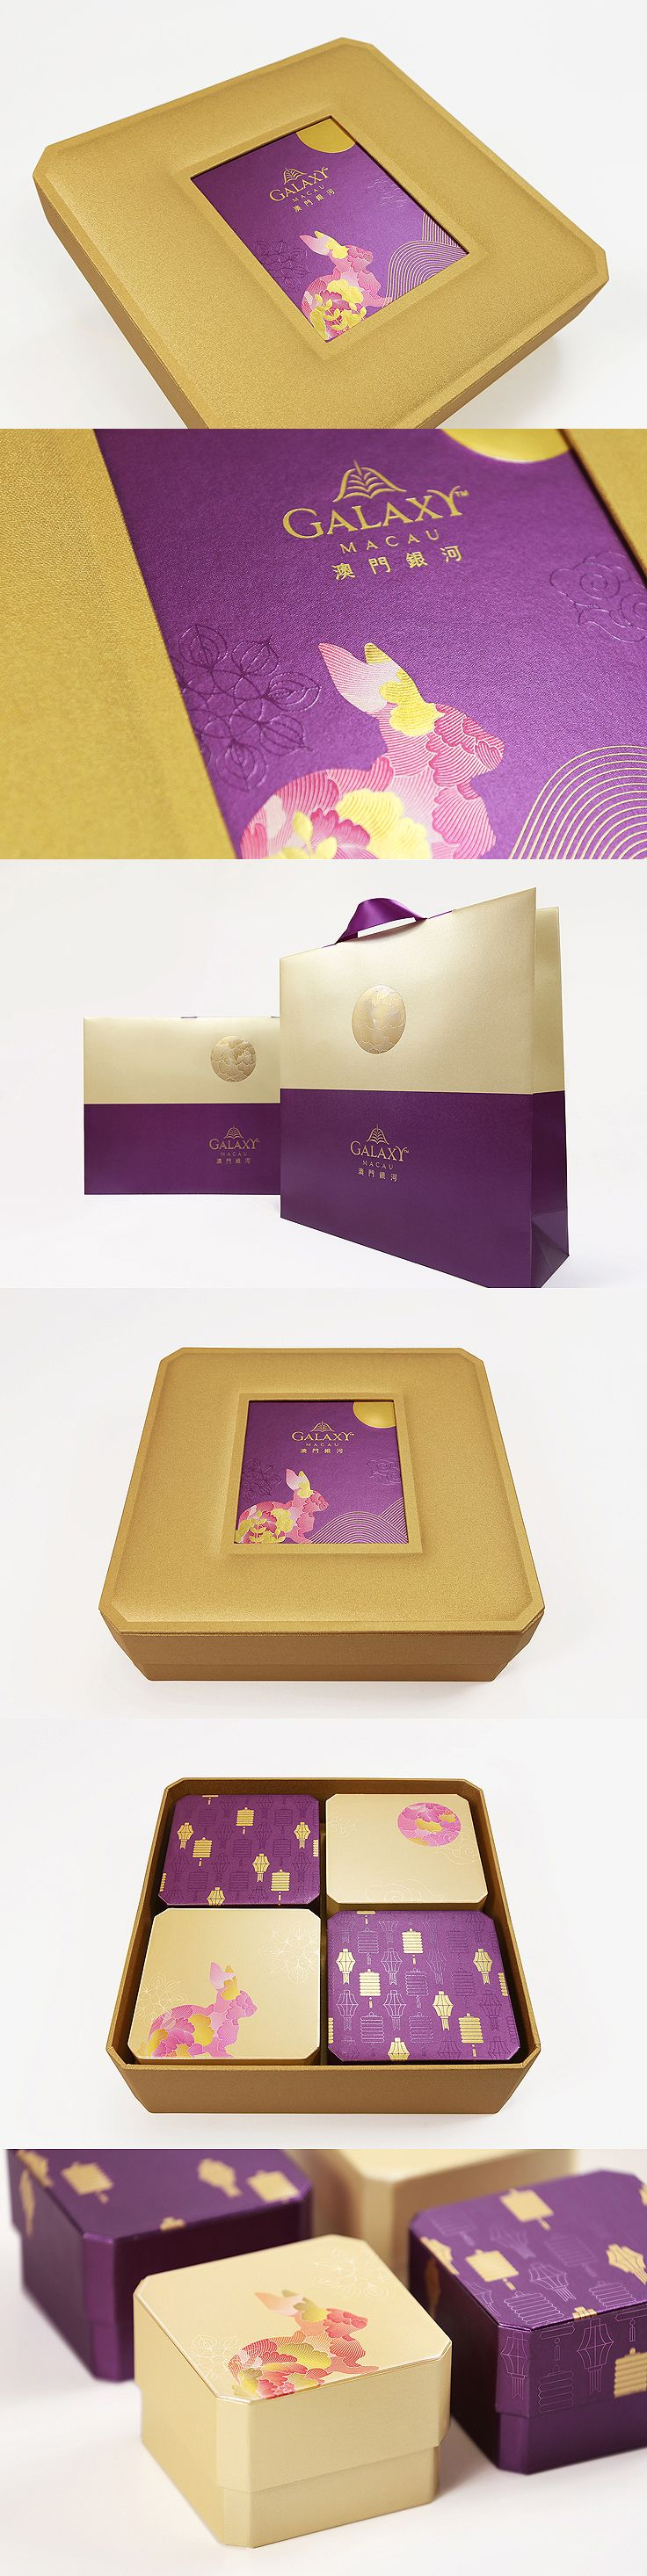 "Mooncake Box Design- Majestic Purple throughout Galaxy Hotel.  An idiom ""Majestic Purple Comes from East"" was innovated to the packaging design of Galaxy Hotel mooncake box. Concept of cover is a painting of Chinese dynastic scroll. Individual boxes of Full moon, rabbit and lanterns with UV effect integrated the harmony of majestic purple and tradition of Mid-Autumn Festival."